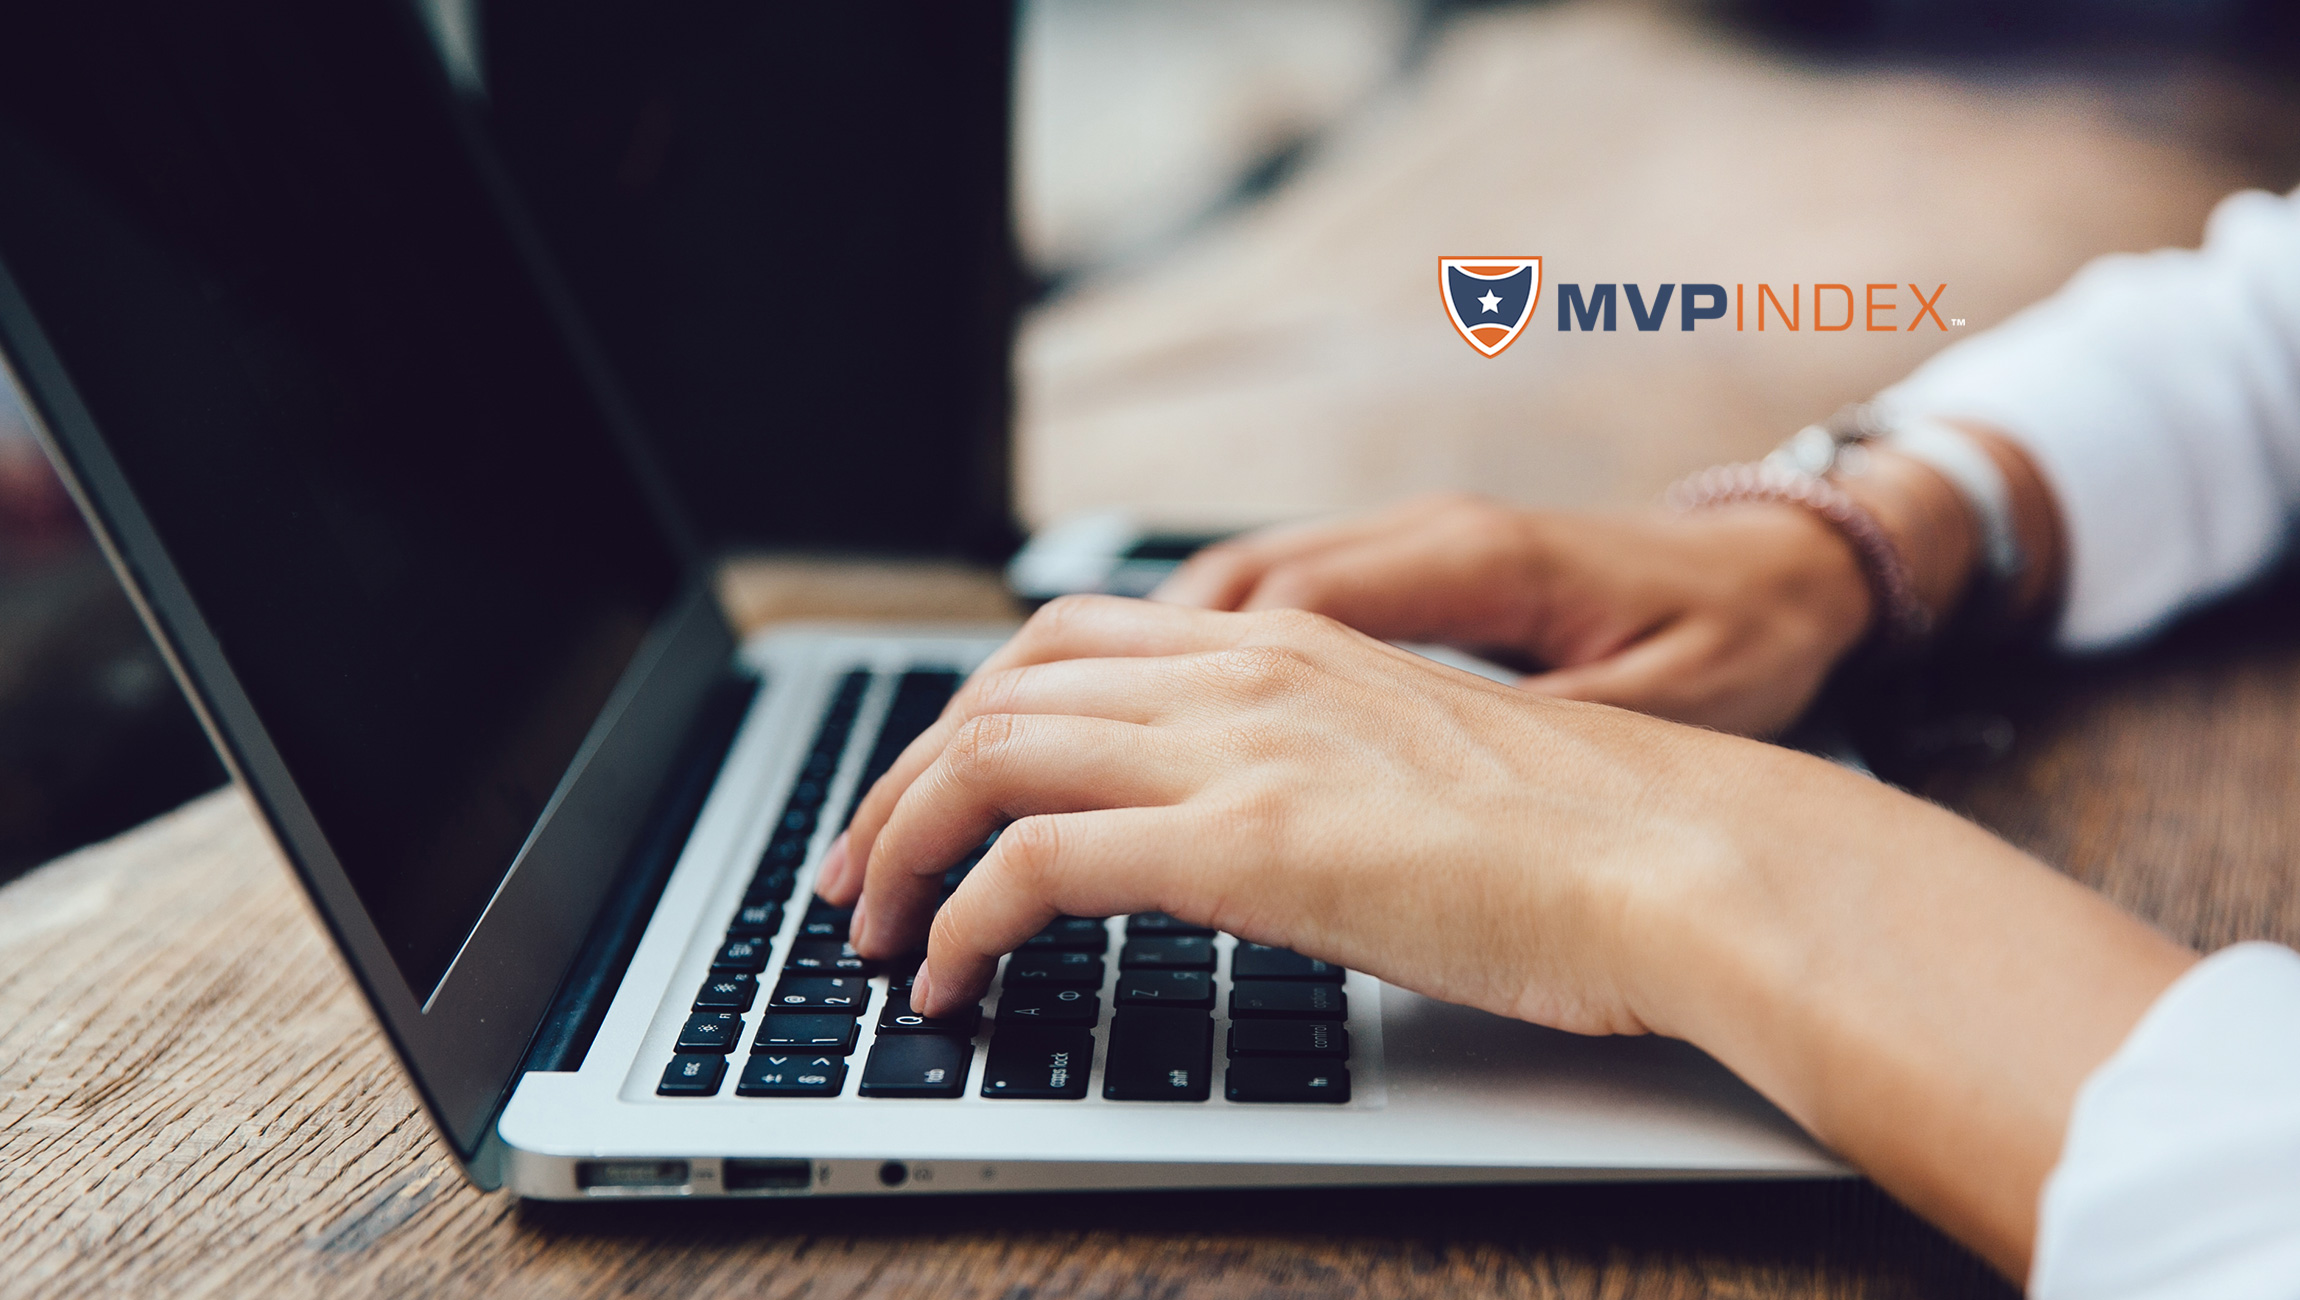 MVPindex Launches New Audience Measurement And Sponsorship